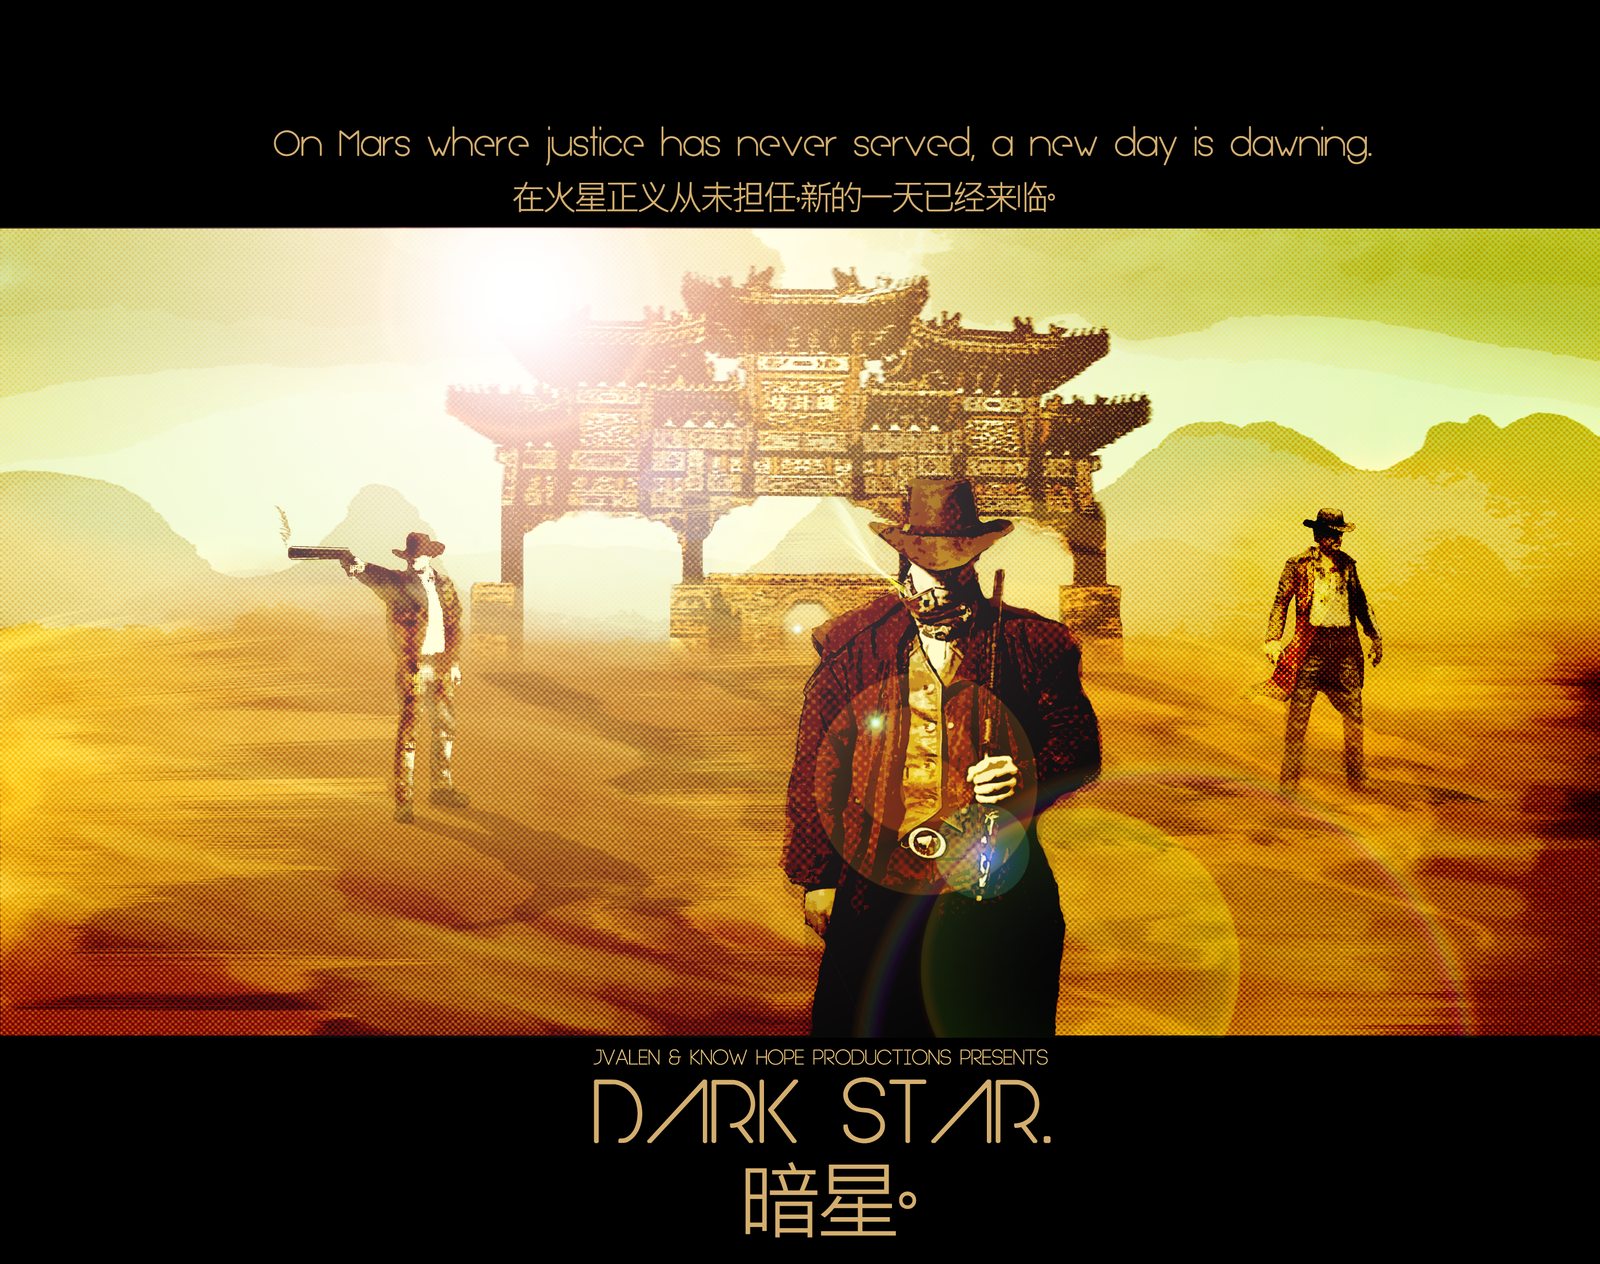 DARK STAR by KnowHopePro